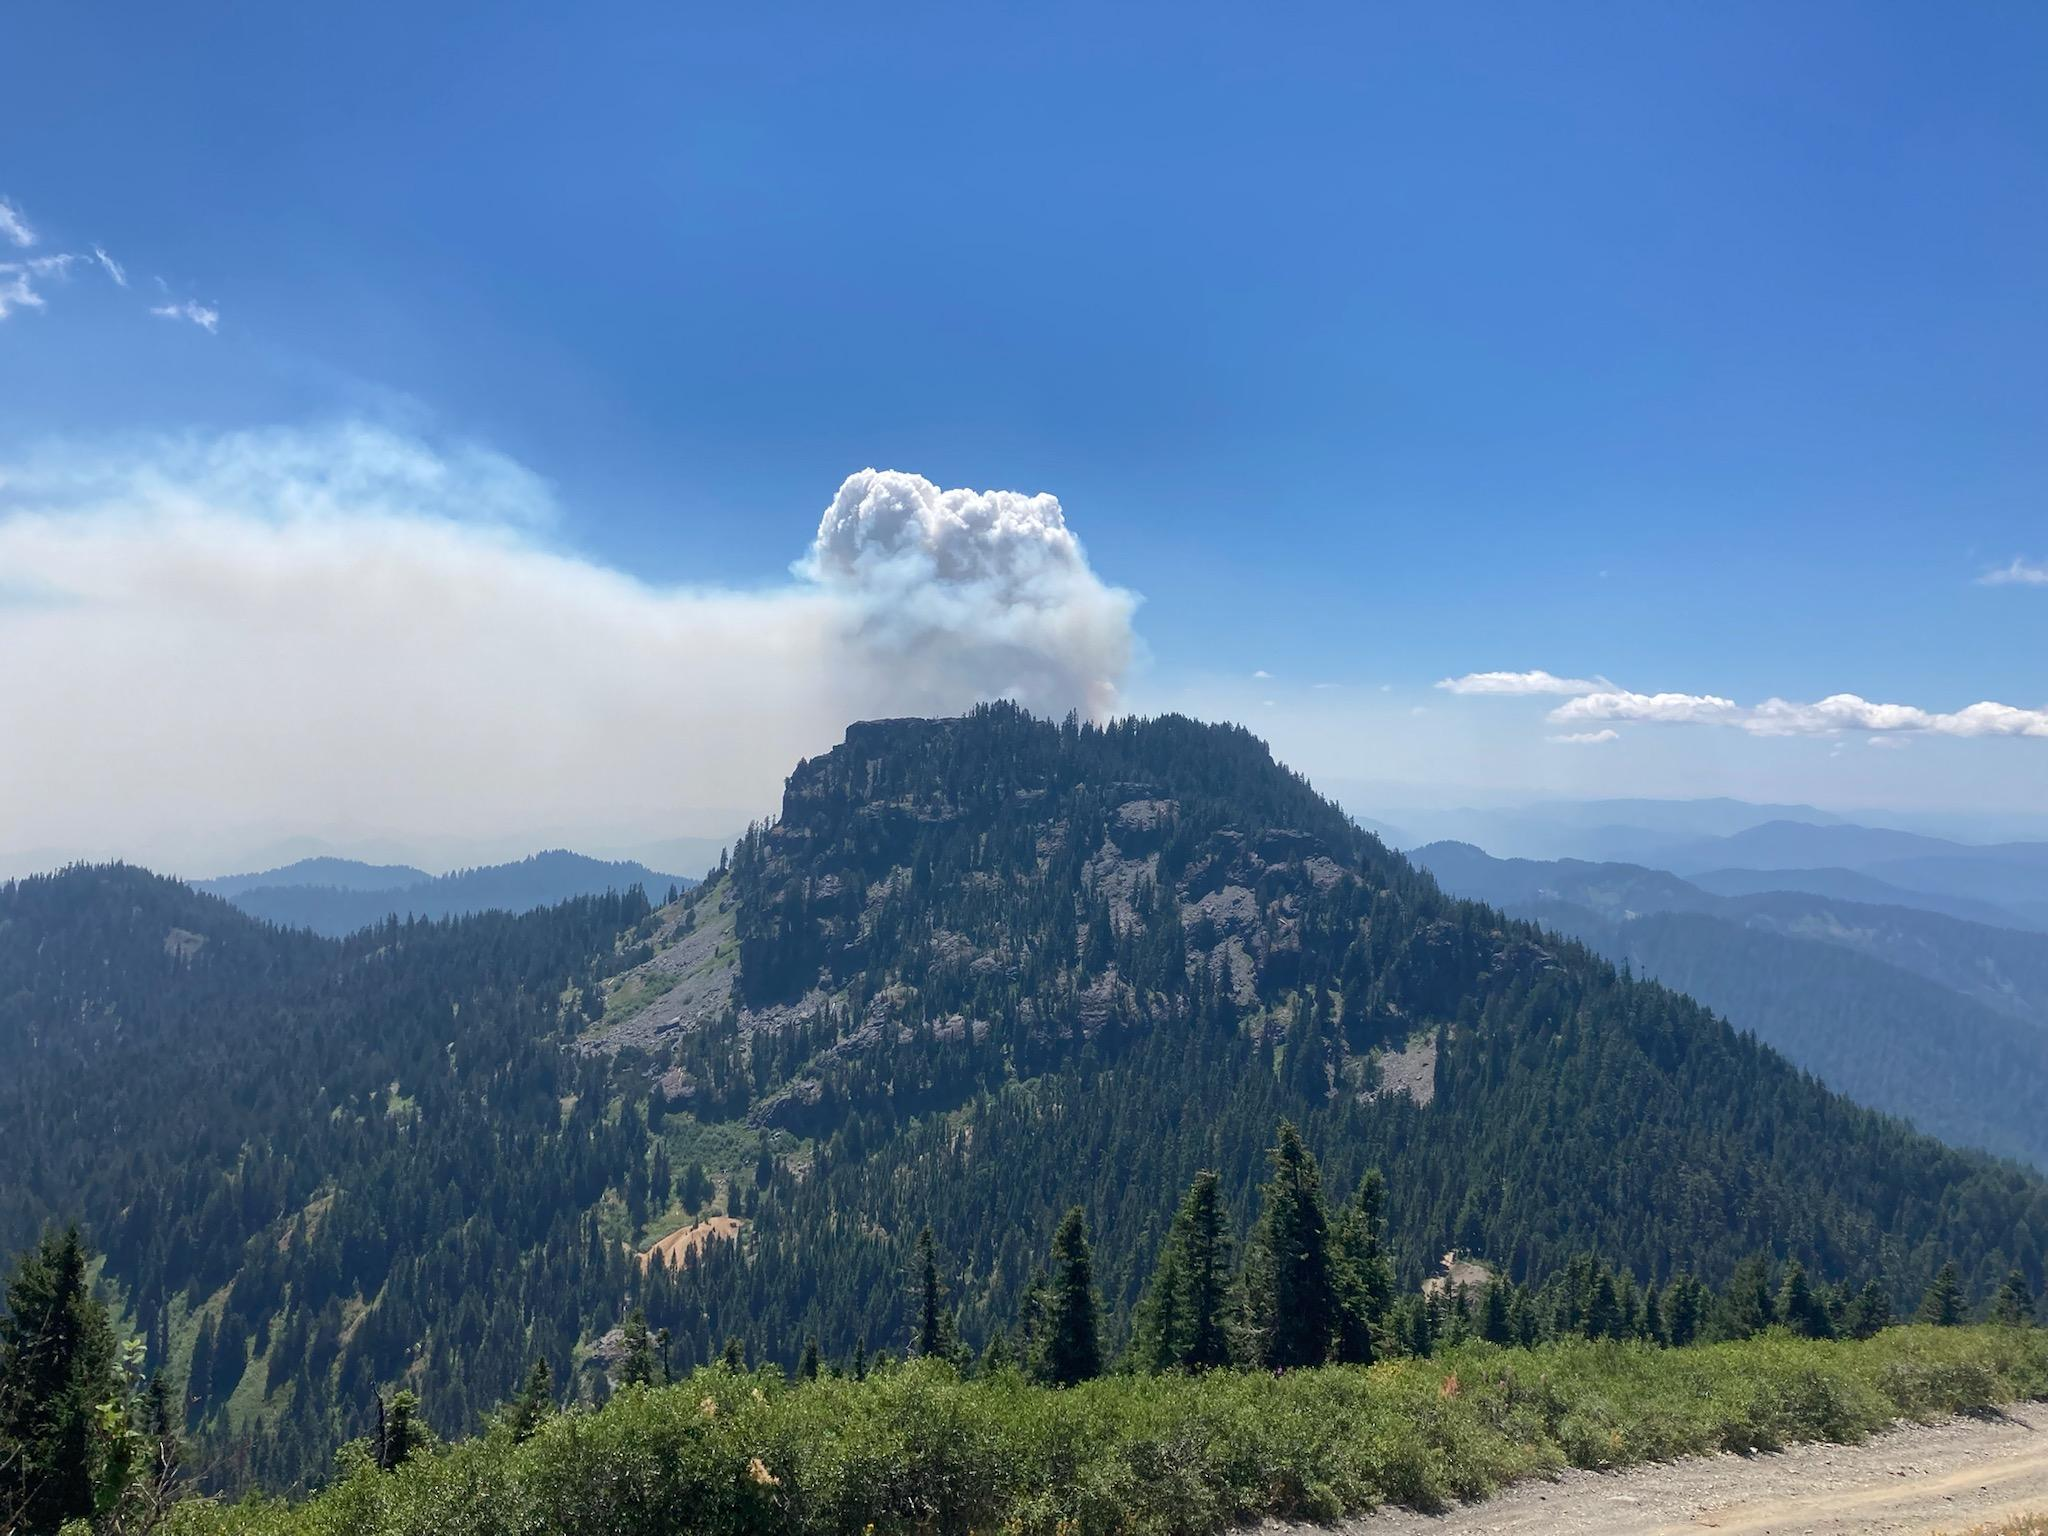 Rough Patch - Chaos Fire on August 7, 2021